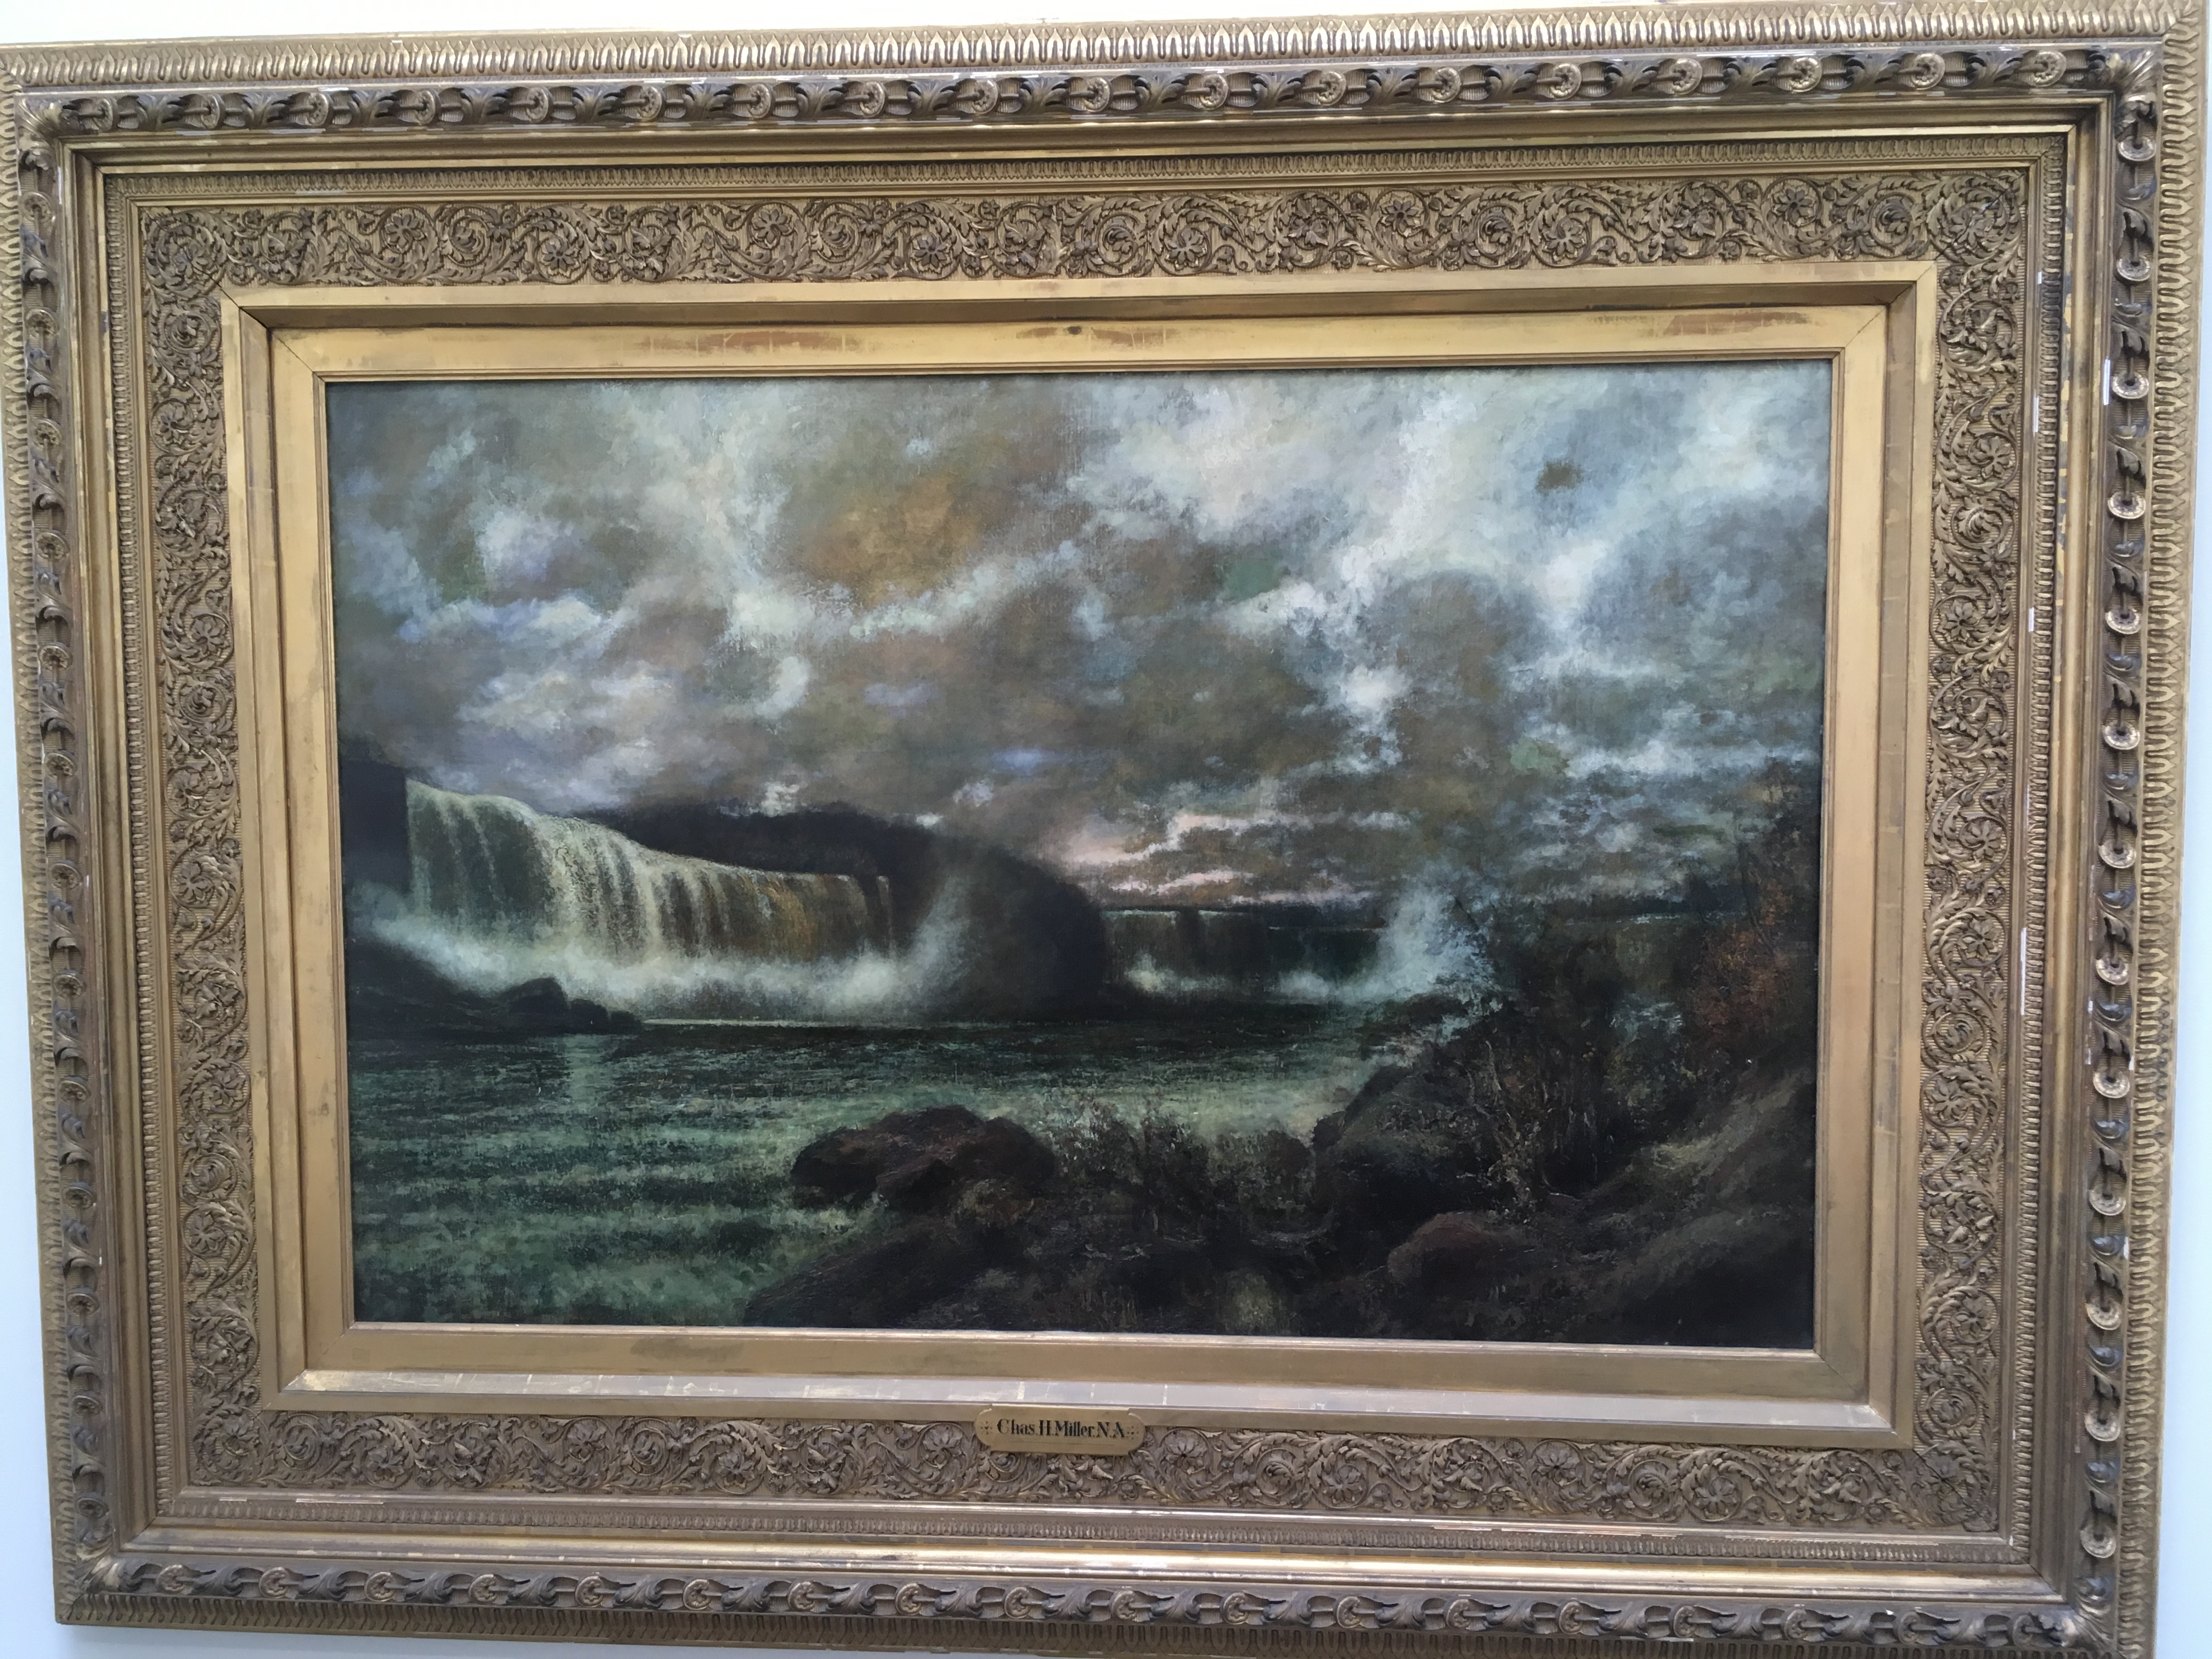 Niagara Falls, painting by Charles Henry Miller, MD